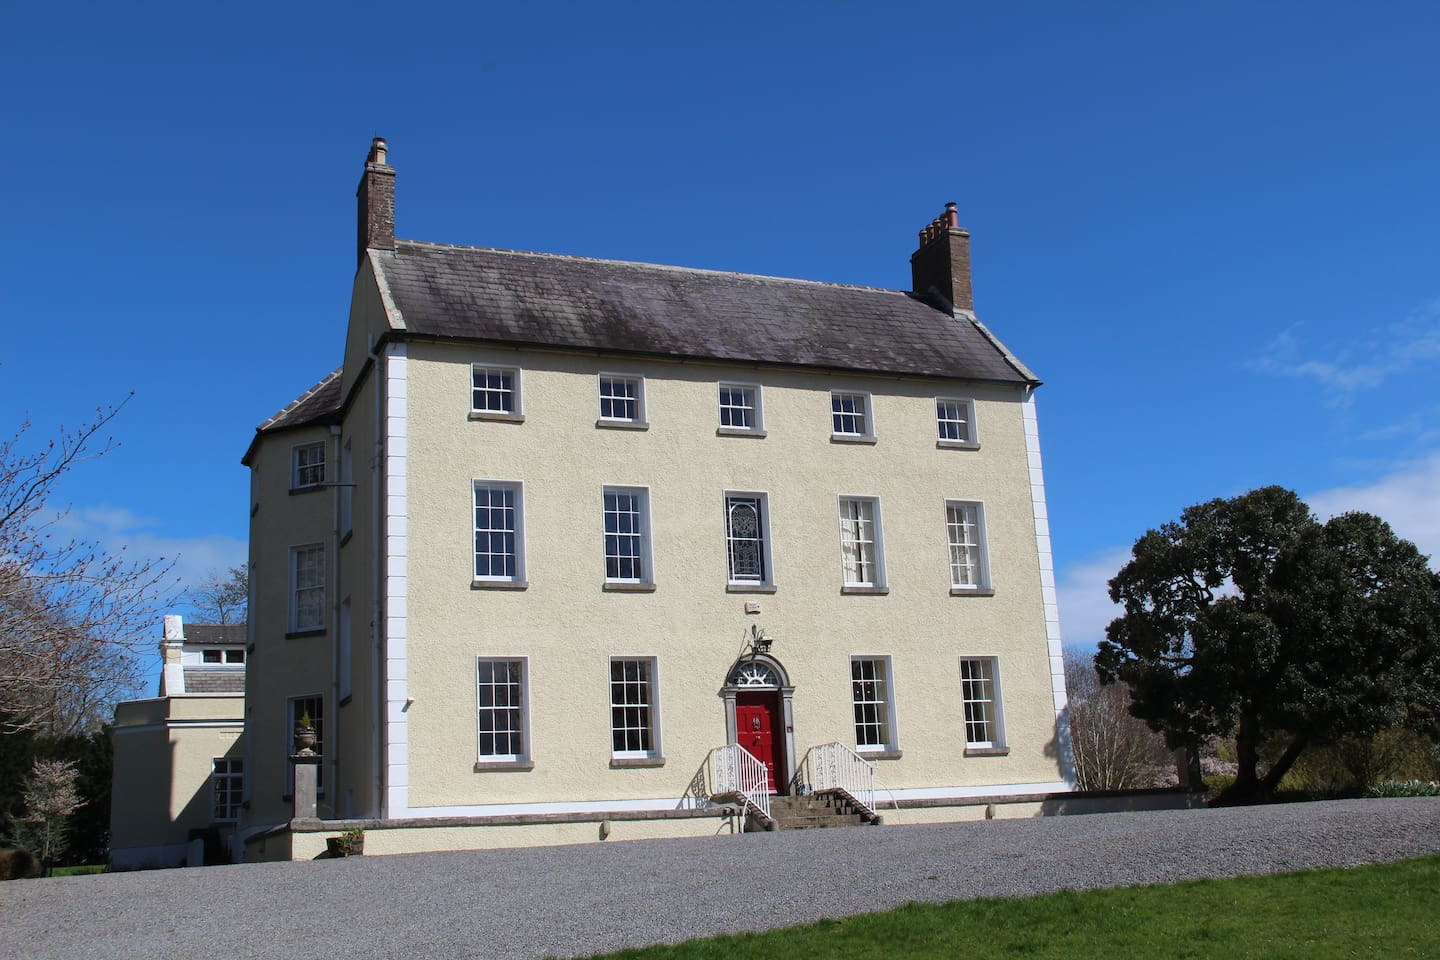 Large Period Country House dating to 1690